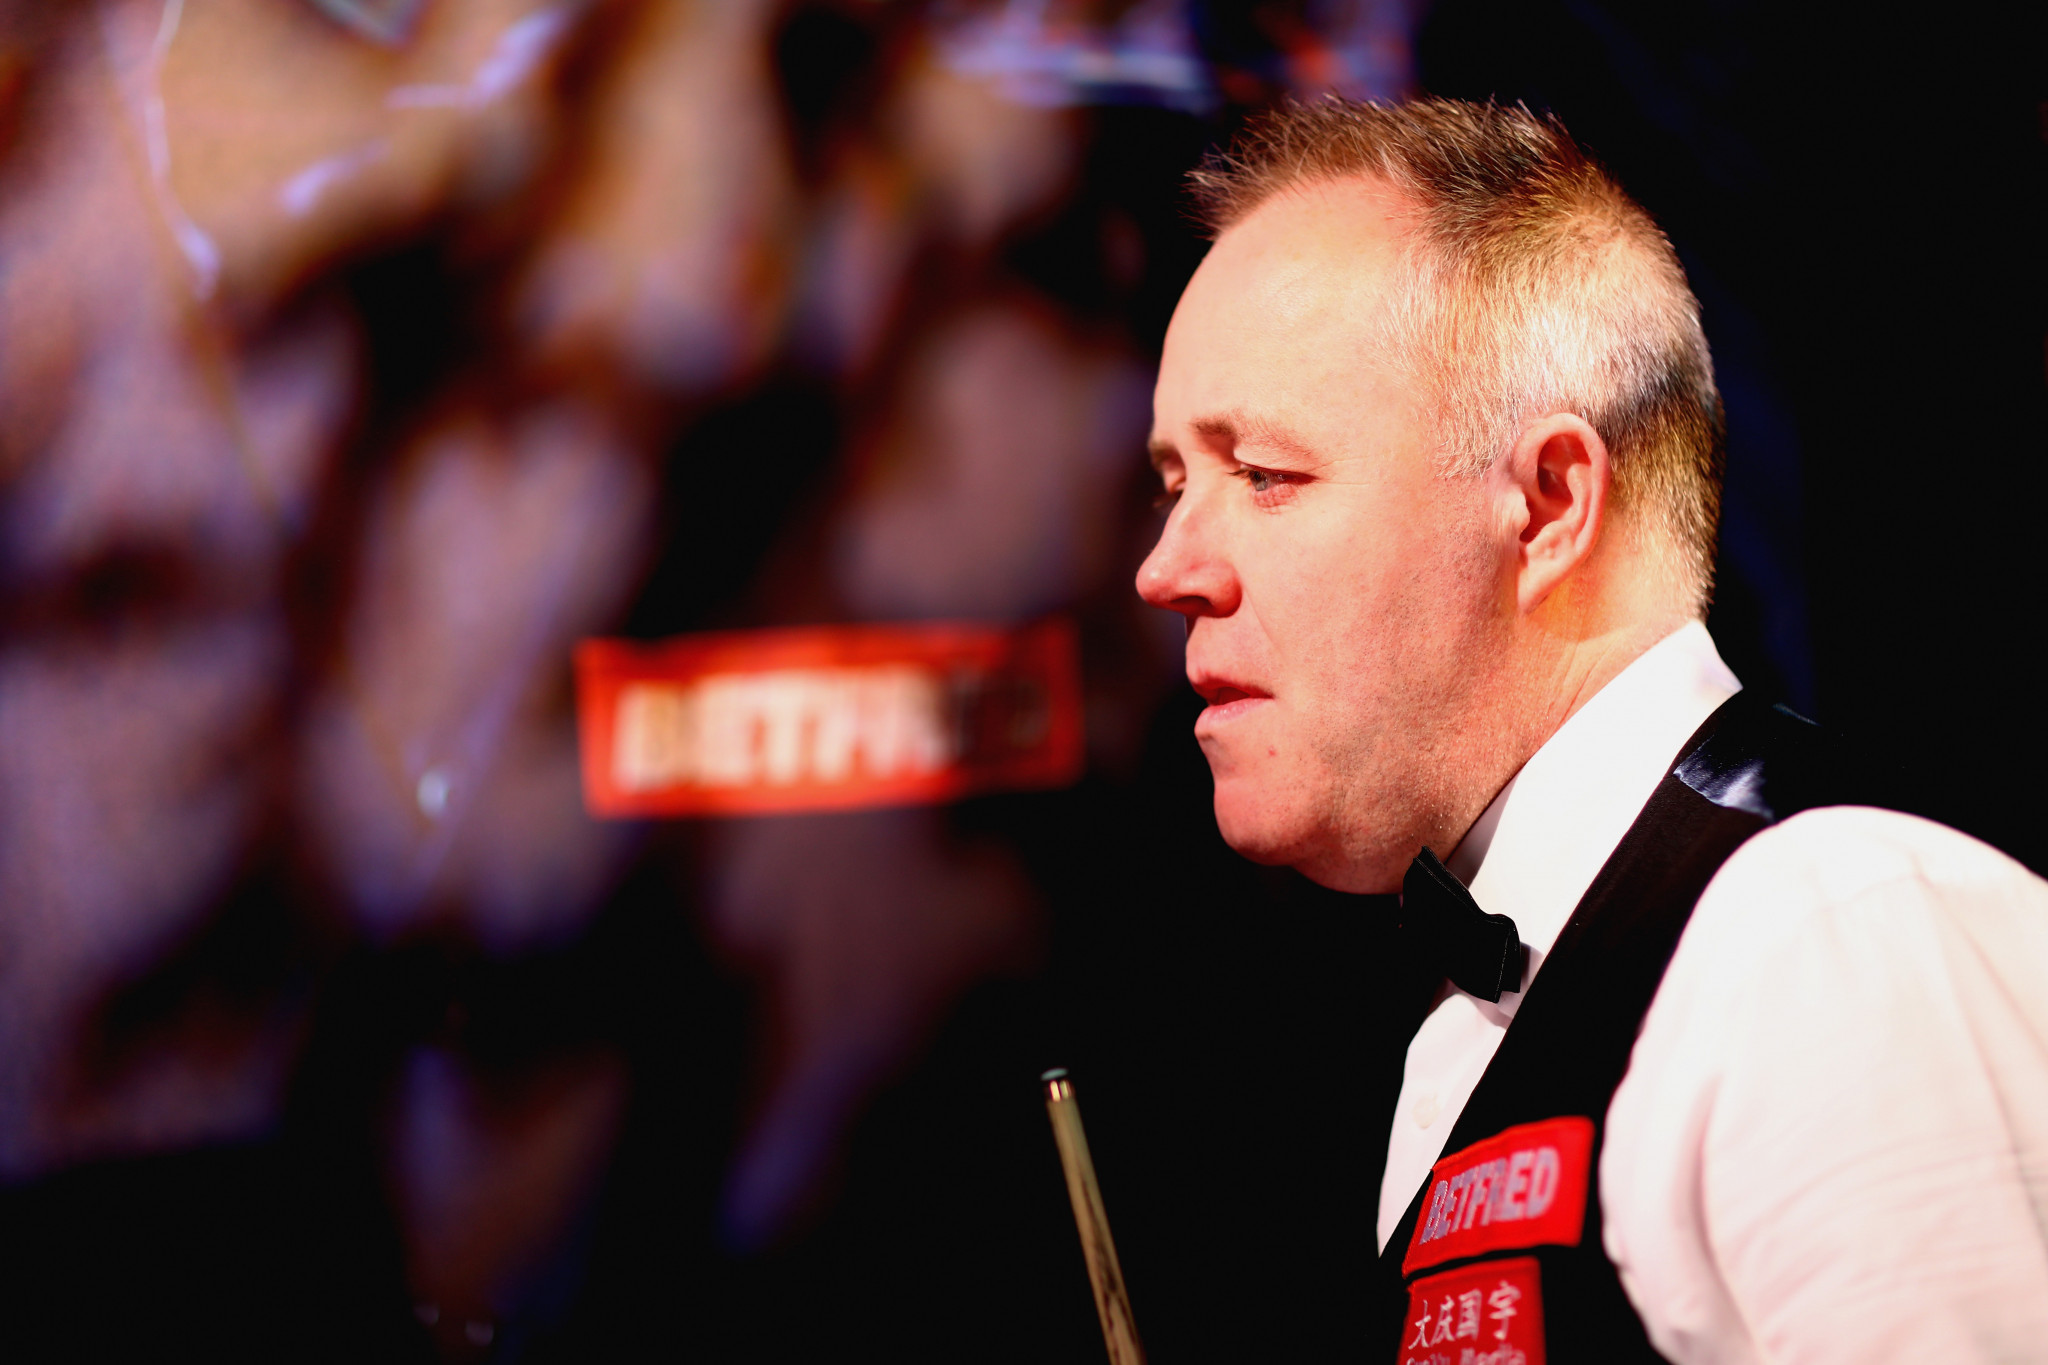 John Higgins edged Judd Trump to reach the semi-finals ©Getty Images